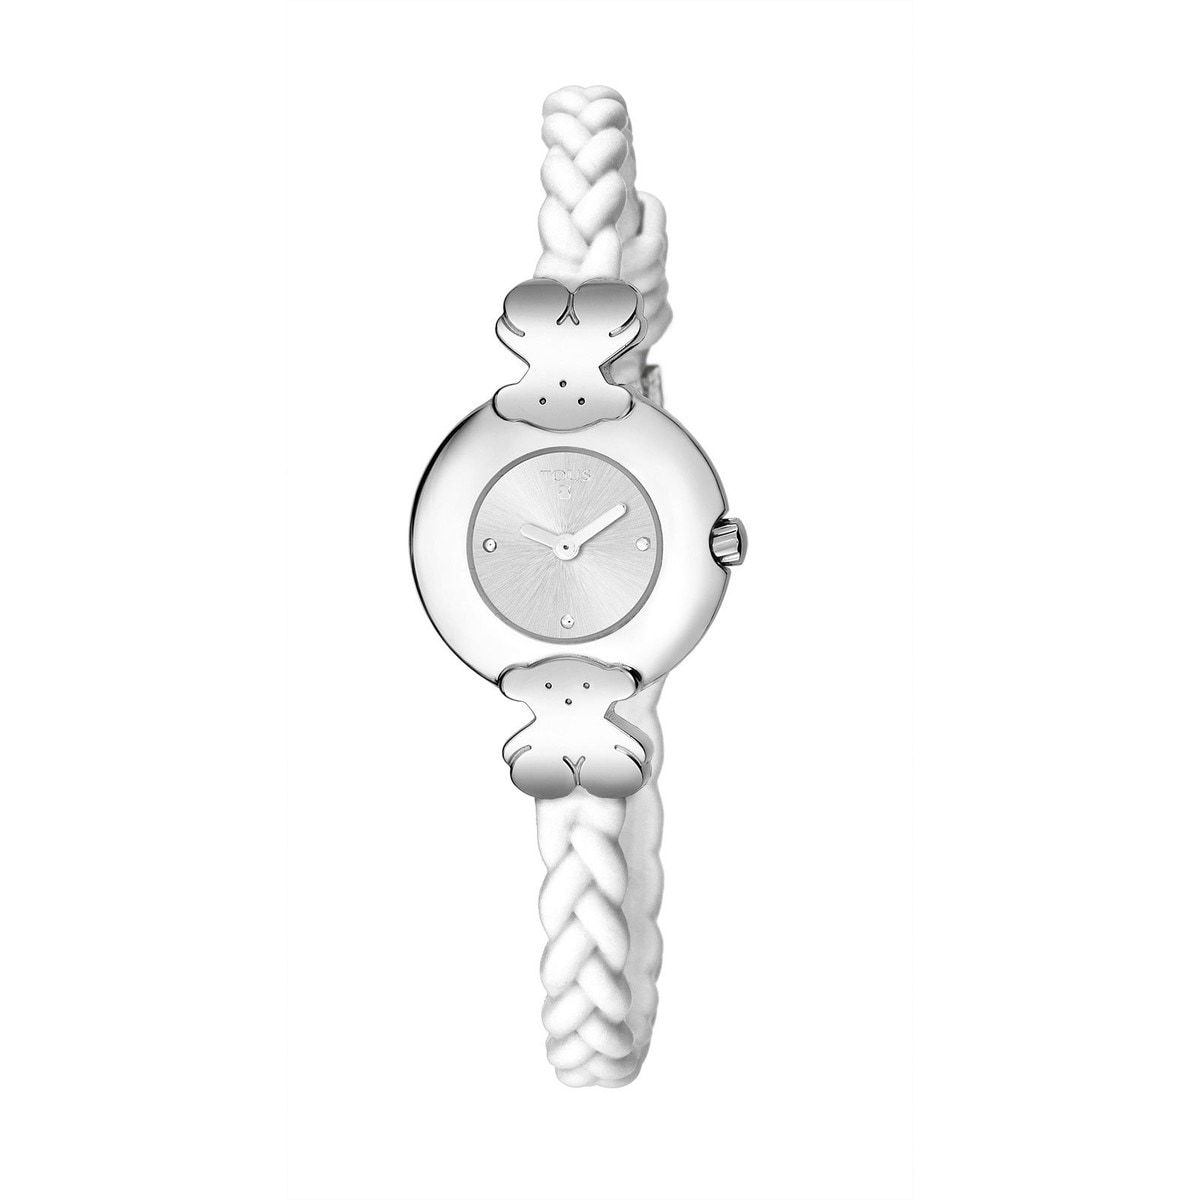 Steel Très Chic Watch with white Silicone strap